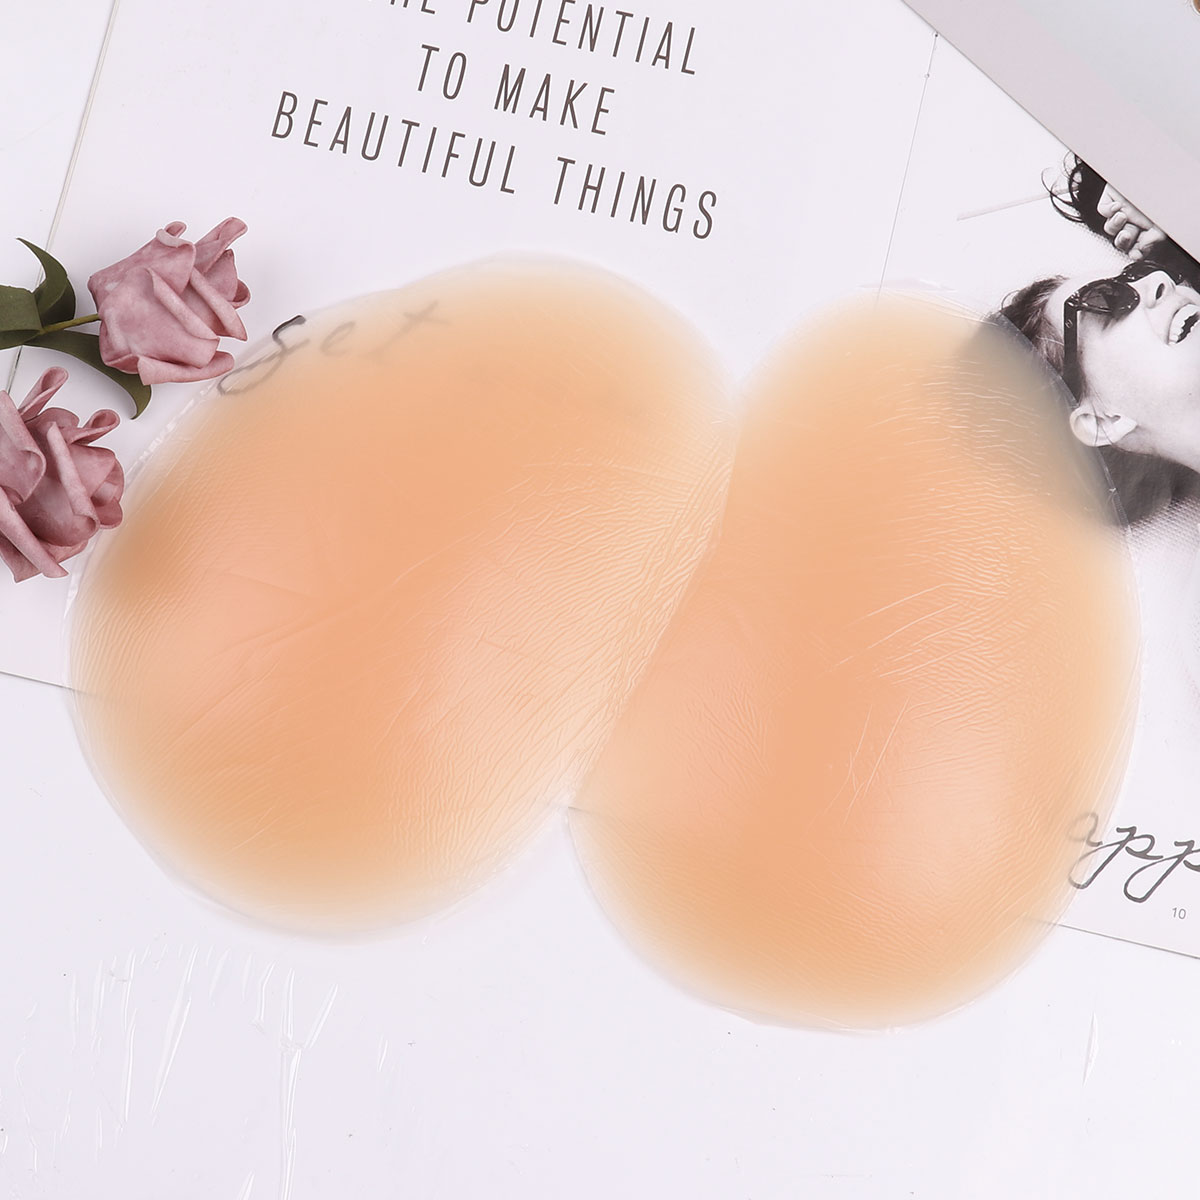 TiaoBug 1 Pair Of Sexy Buttocks Comfortable Enhancers Inserts Lifter Contour Push Up Shapers Women Removable Silicone Butt Pads